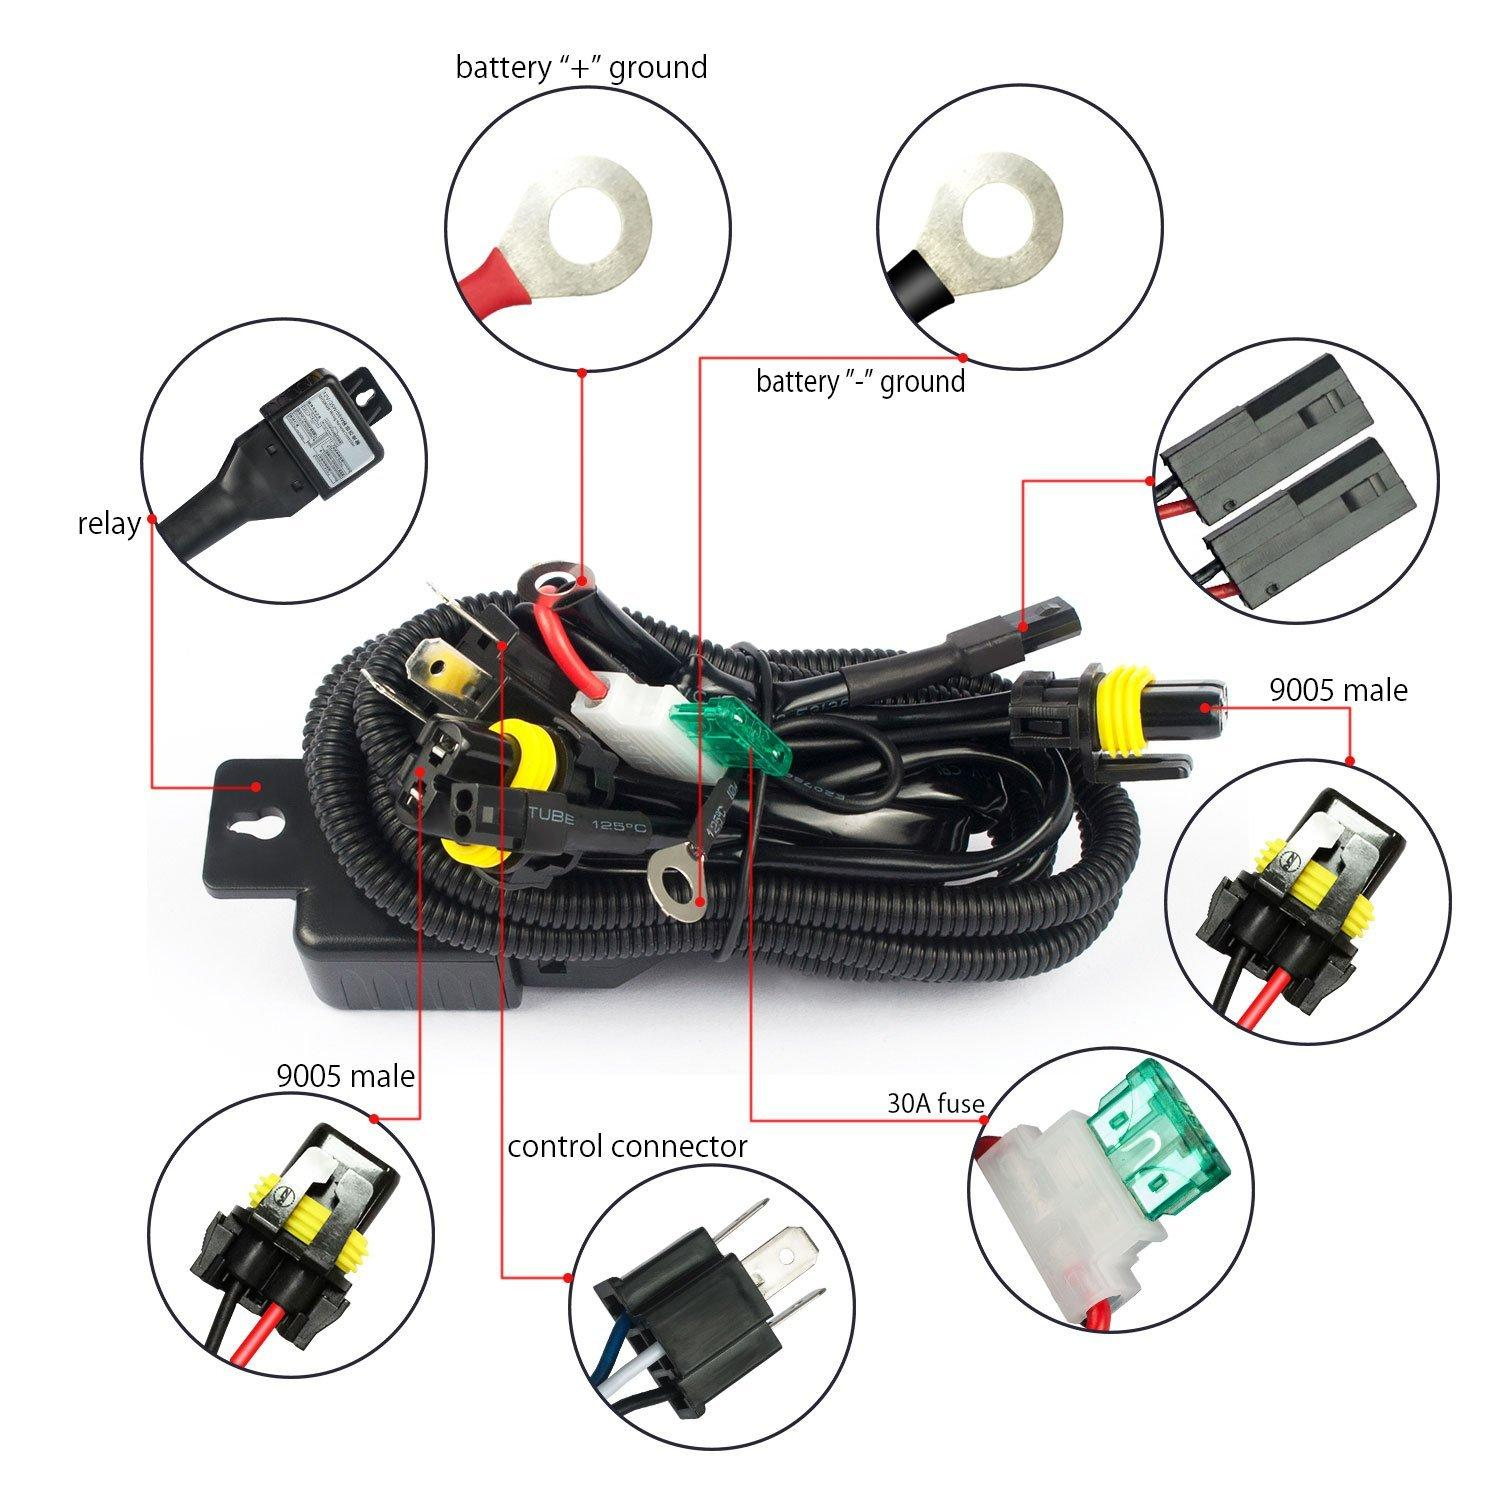 H4 Hid Wiring Harness - Wiring Diagram Het H Hid Ballast Wiring Diagram on h4 wiring with diode, h4 to h13 wiring, h4 wiring lamp, h4 bulb wiring brights, h4 plug diagram, h4 bulb wiring-diagram, h4 wiring-diagram relay, h4 wiring diy,